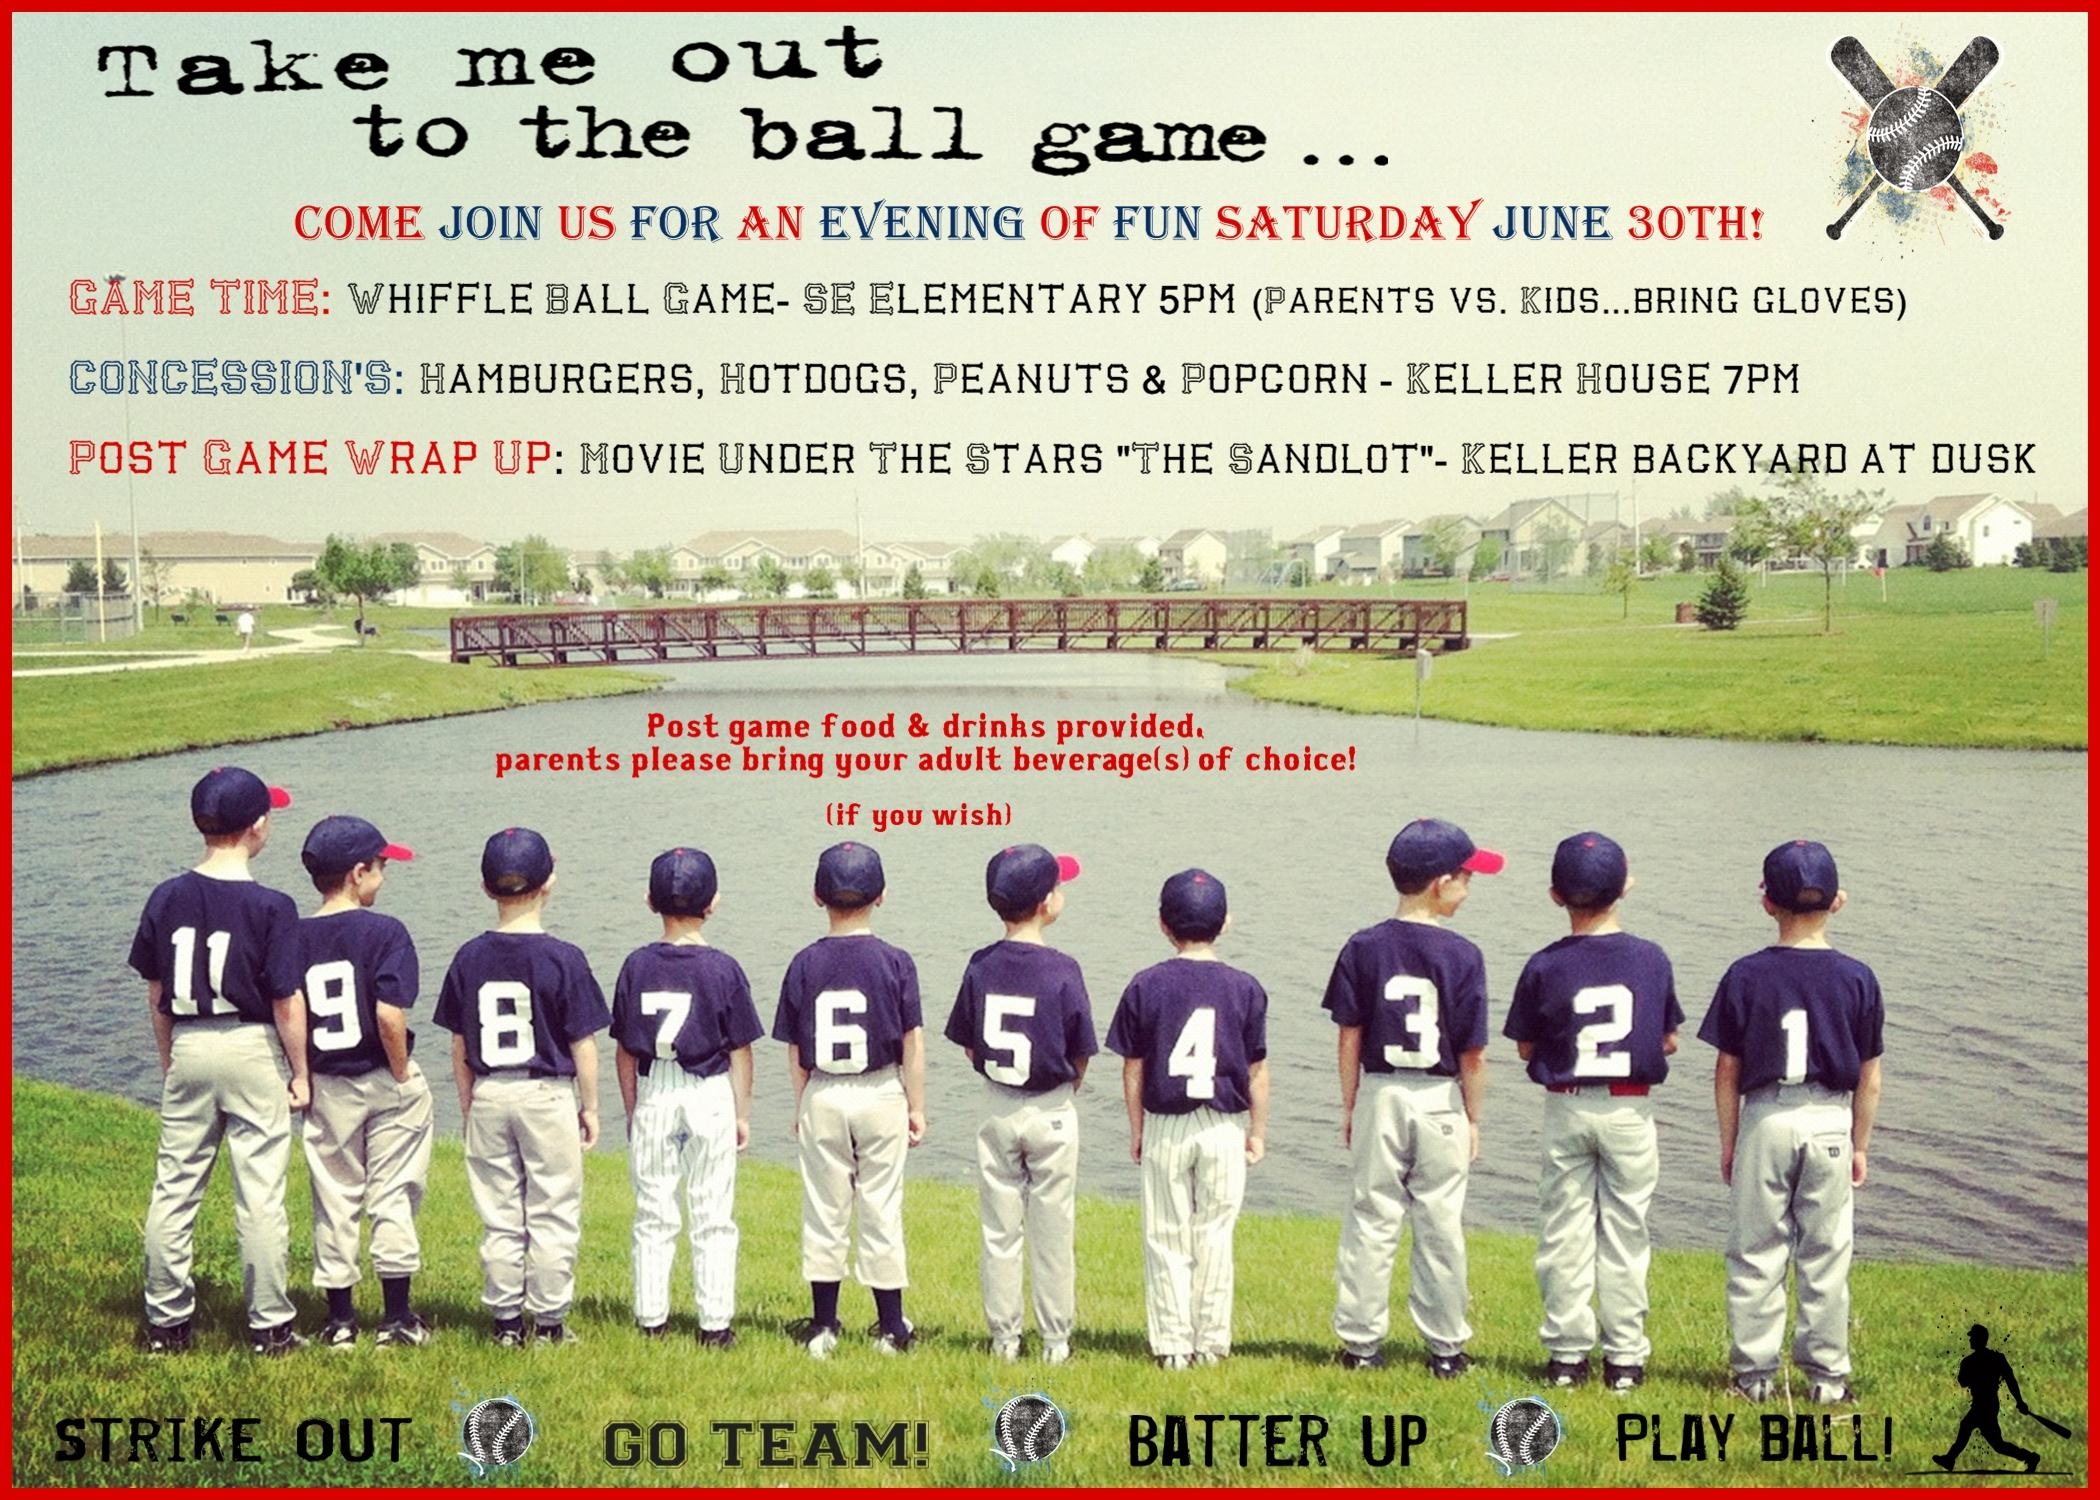 baseball birthday party invitation wording ; baseball-birthday-party-invitations-example-baseball-party-invite-great-idea-for-a-team-party-of-baseball-birthday-party-invitations